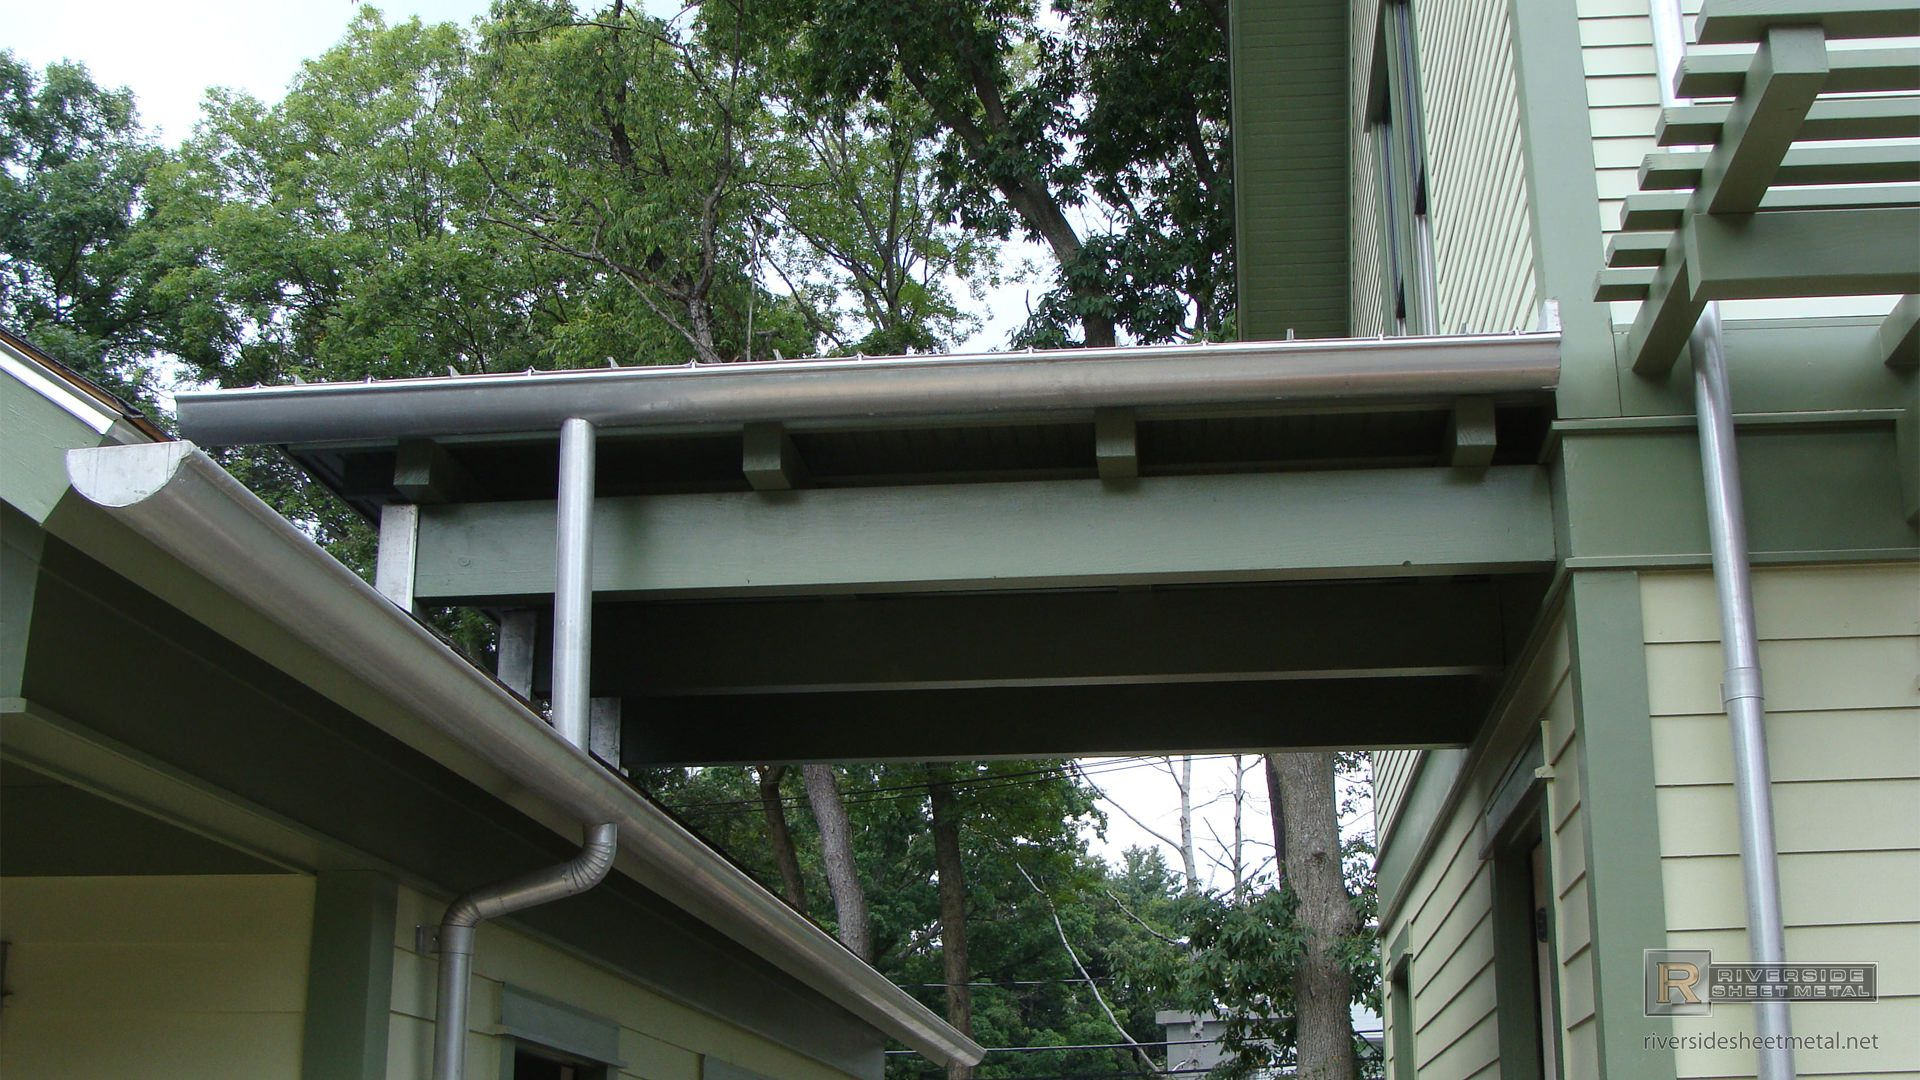 Tcsii Half Round Single Bead Gutter Installation How To Install Gutters Installation Gutter